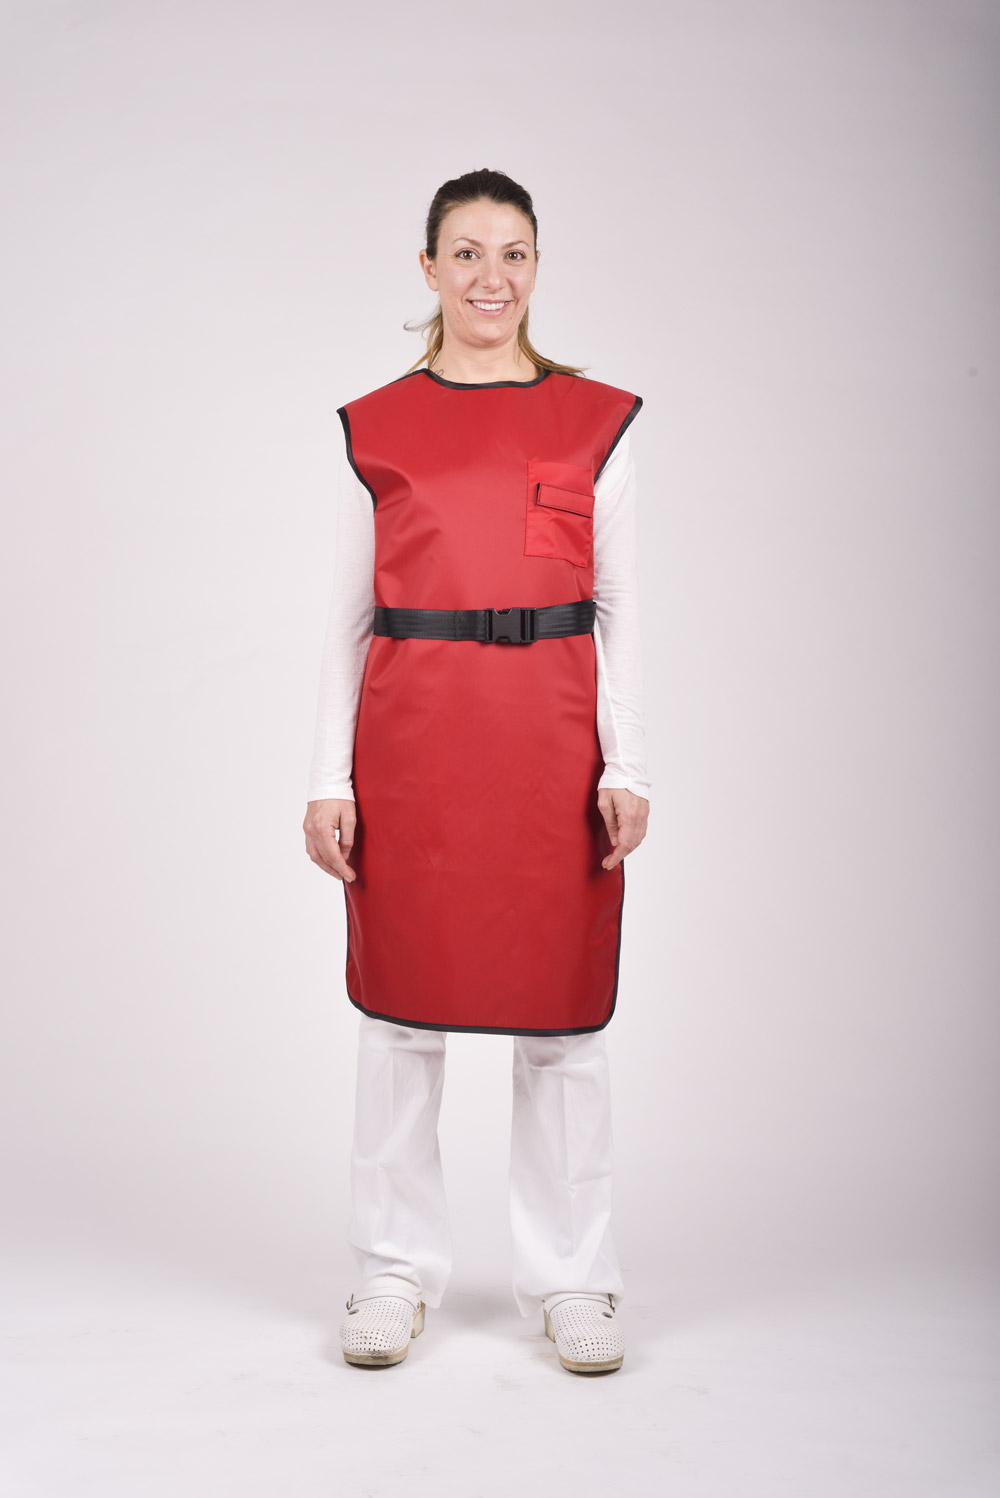 Lead Aprons with Scapular Protection - Cablas